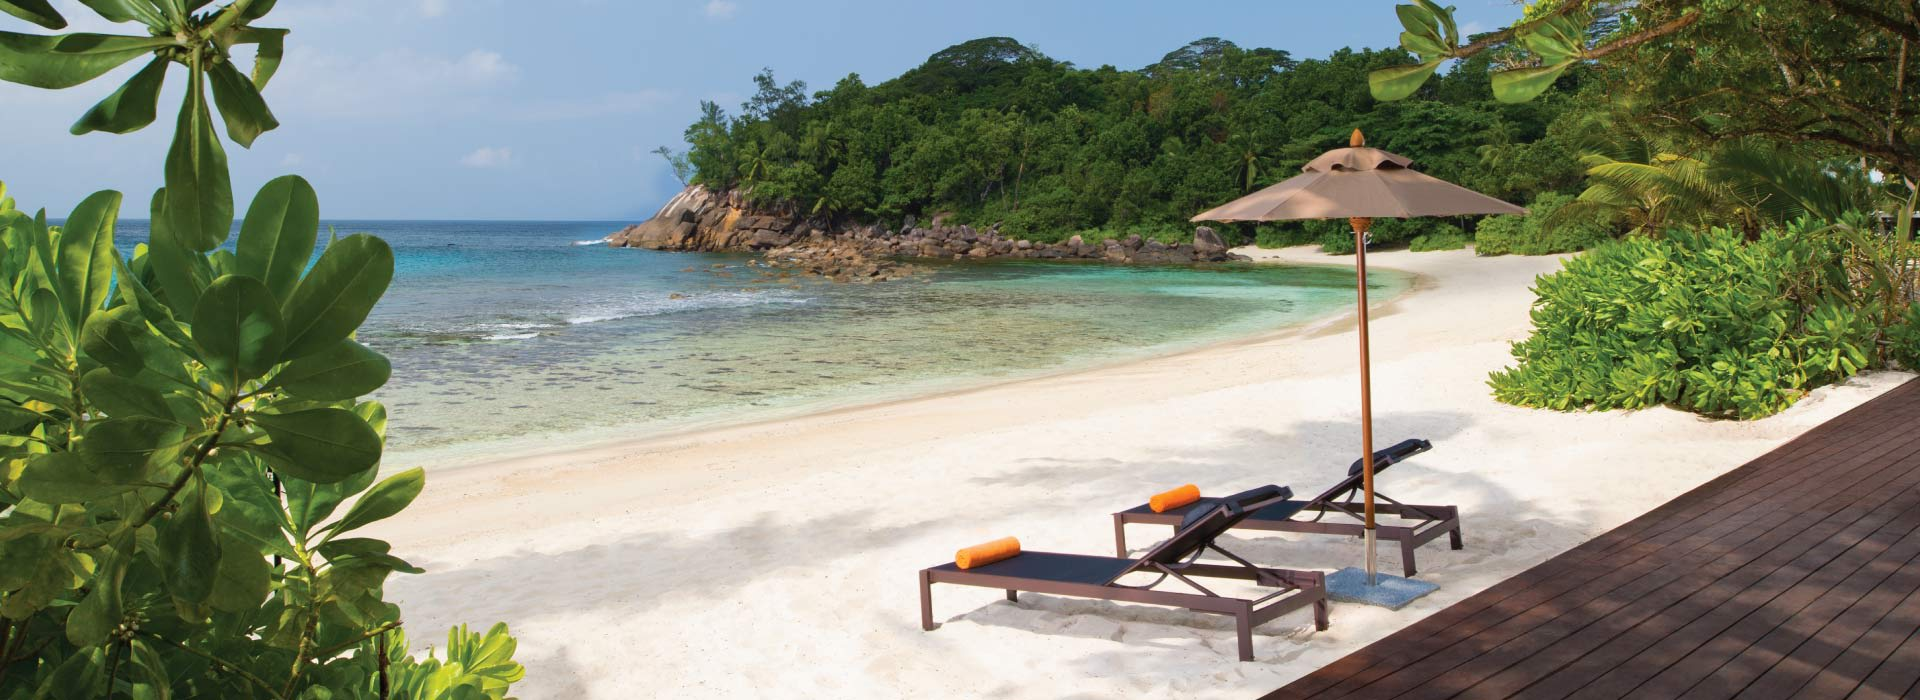 Special Seychelles Hotel Deals for beach lovers